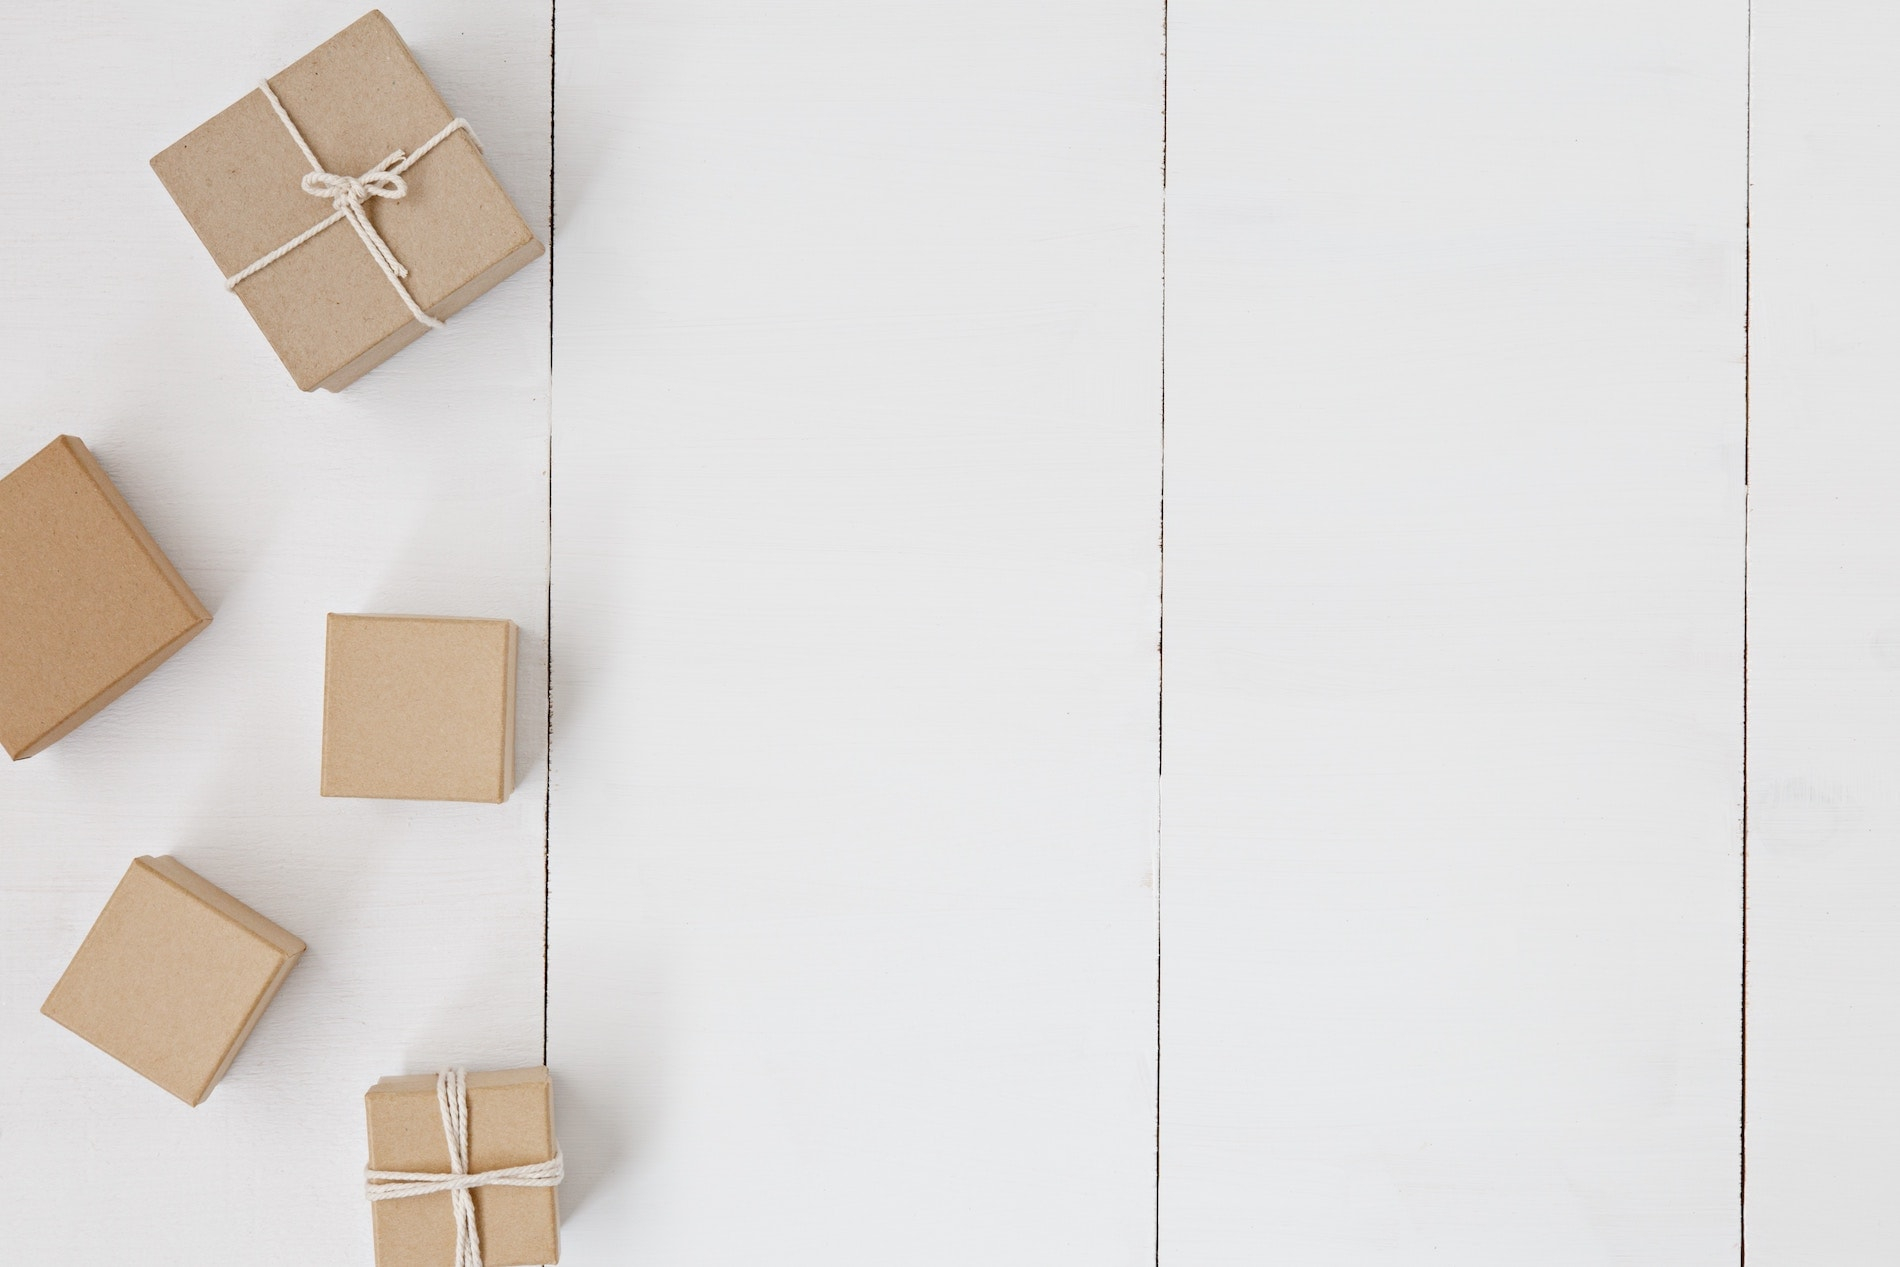 Brown cardboard boxes tied with string